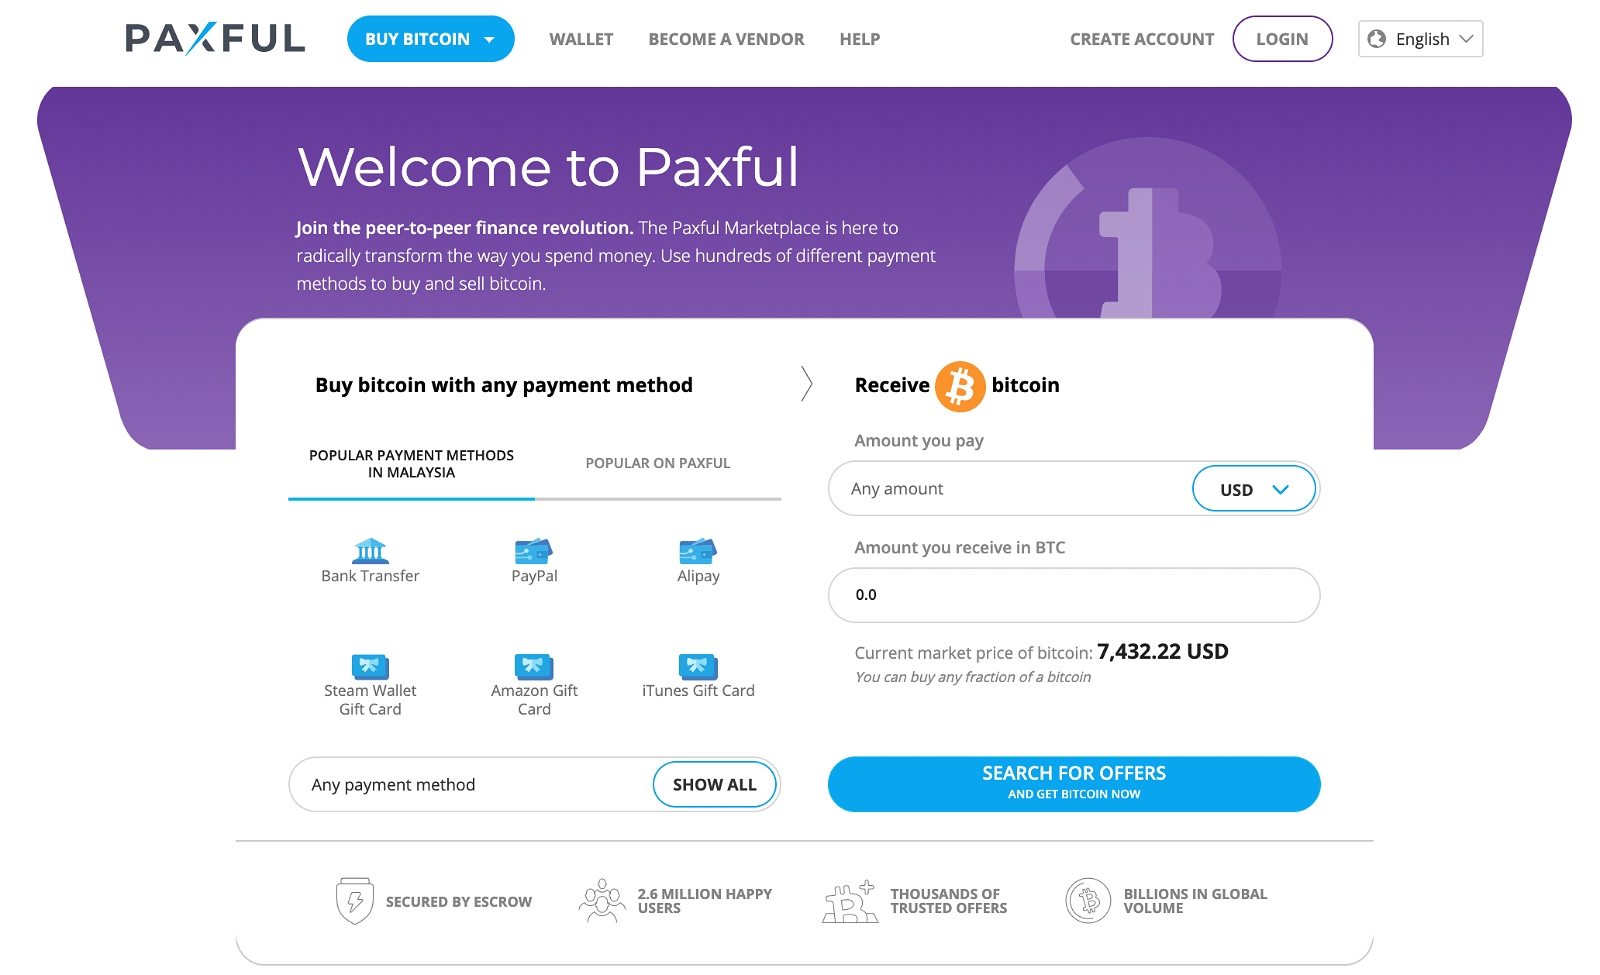 1631491932_961_2-EASY-Ways-to-Buy-Bitcoin-Instantly-with-PayPal